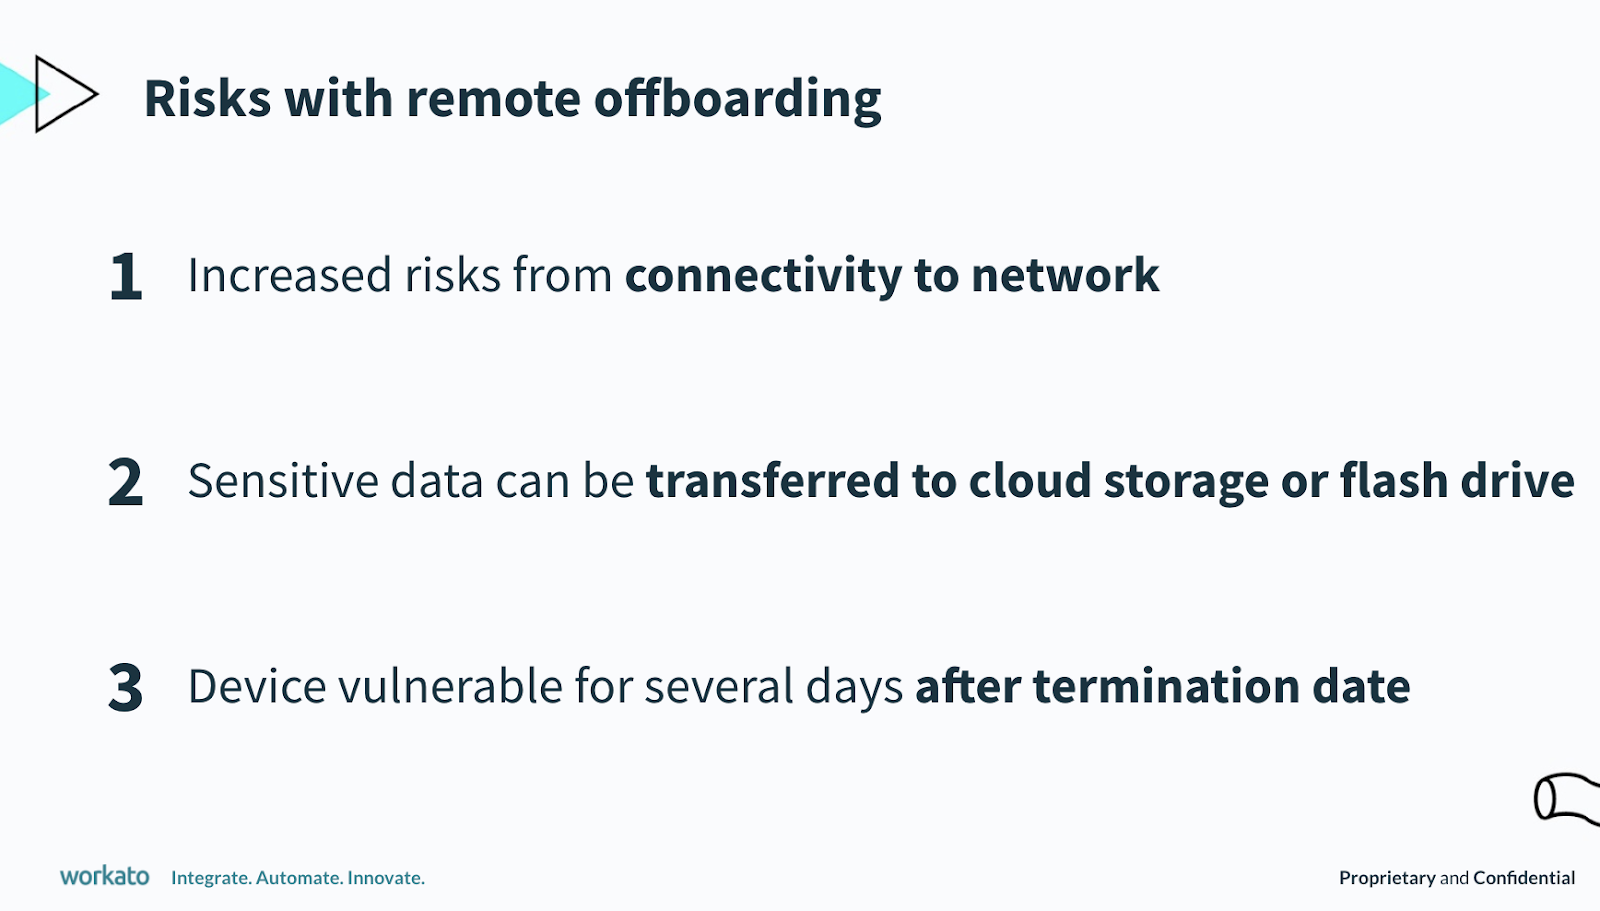 A list of remote offboarding risks